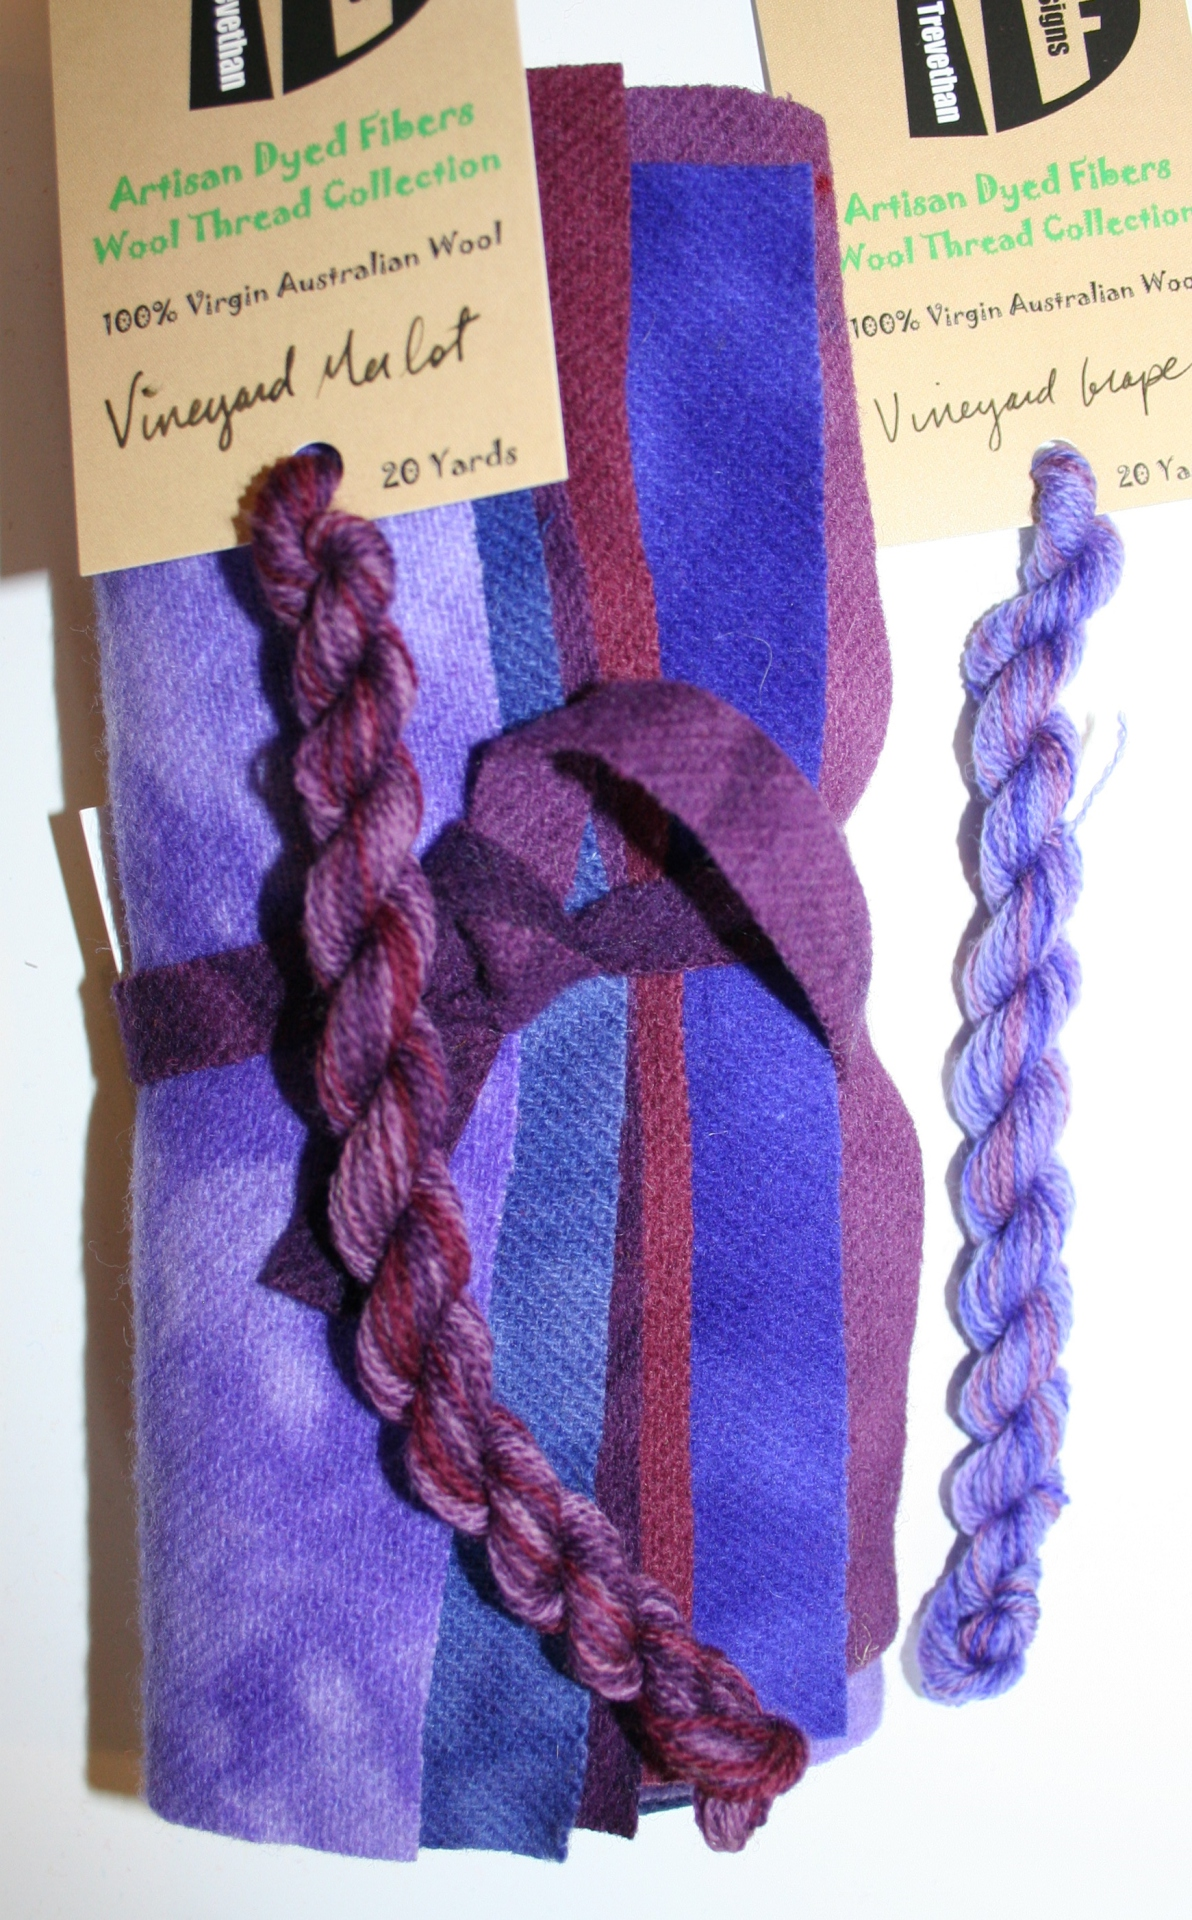 Vineyard Hand Dyed Wool Six Pack Collection